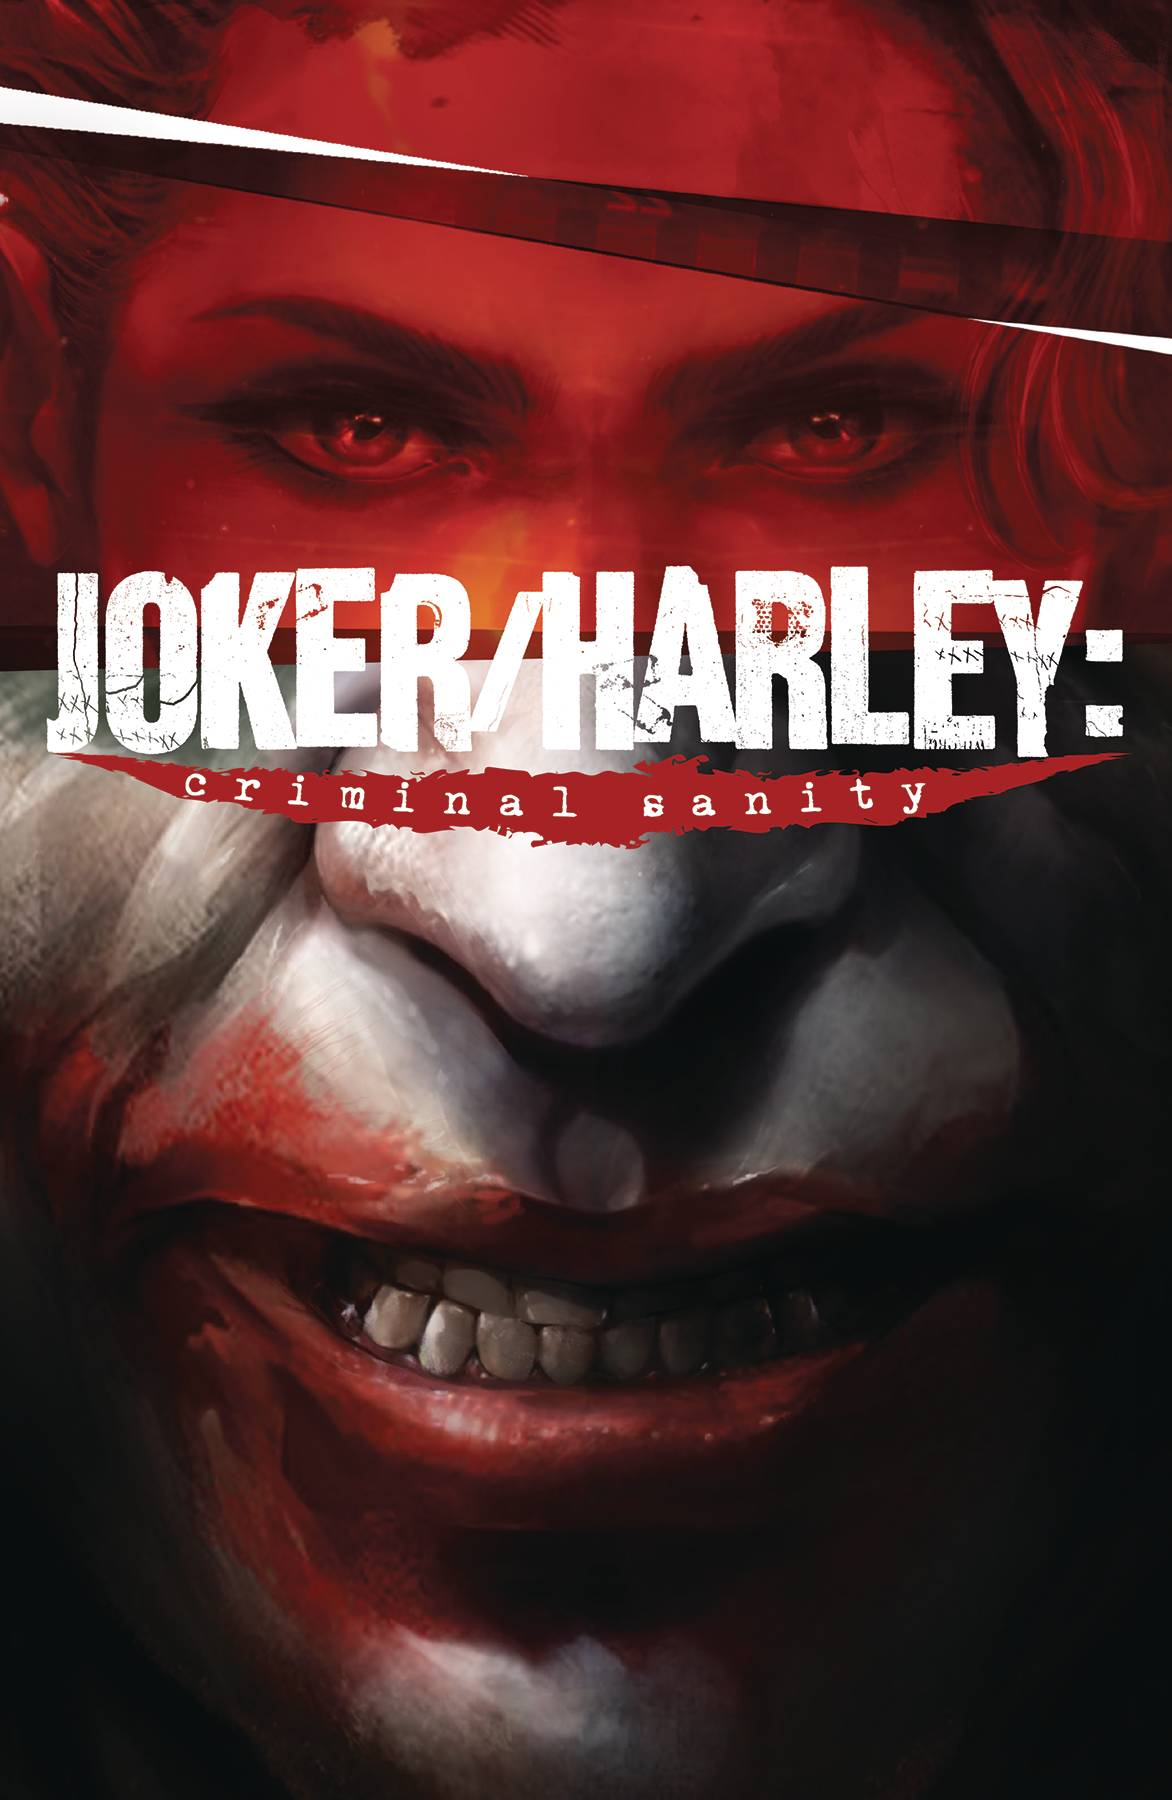 JOKER HARLEY CRIMINAL SANITY 1 of 9.jpg